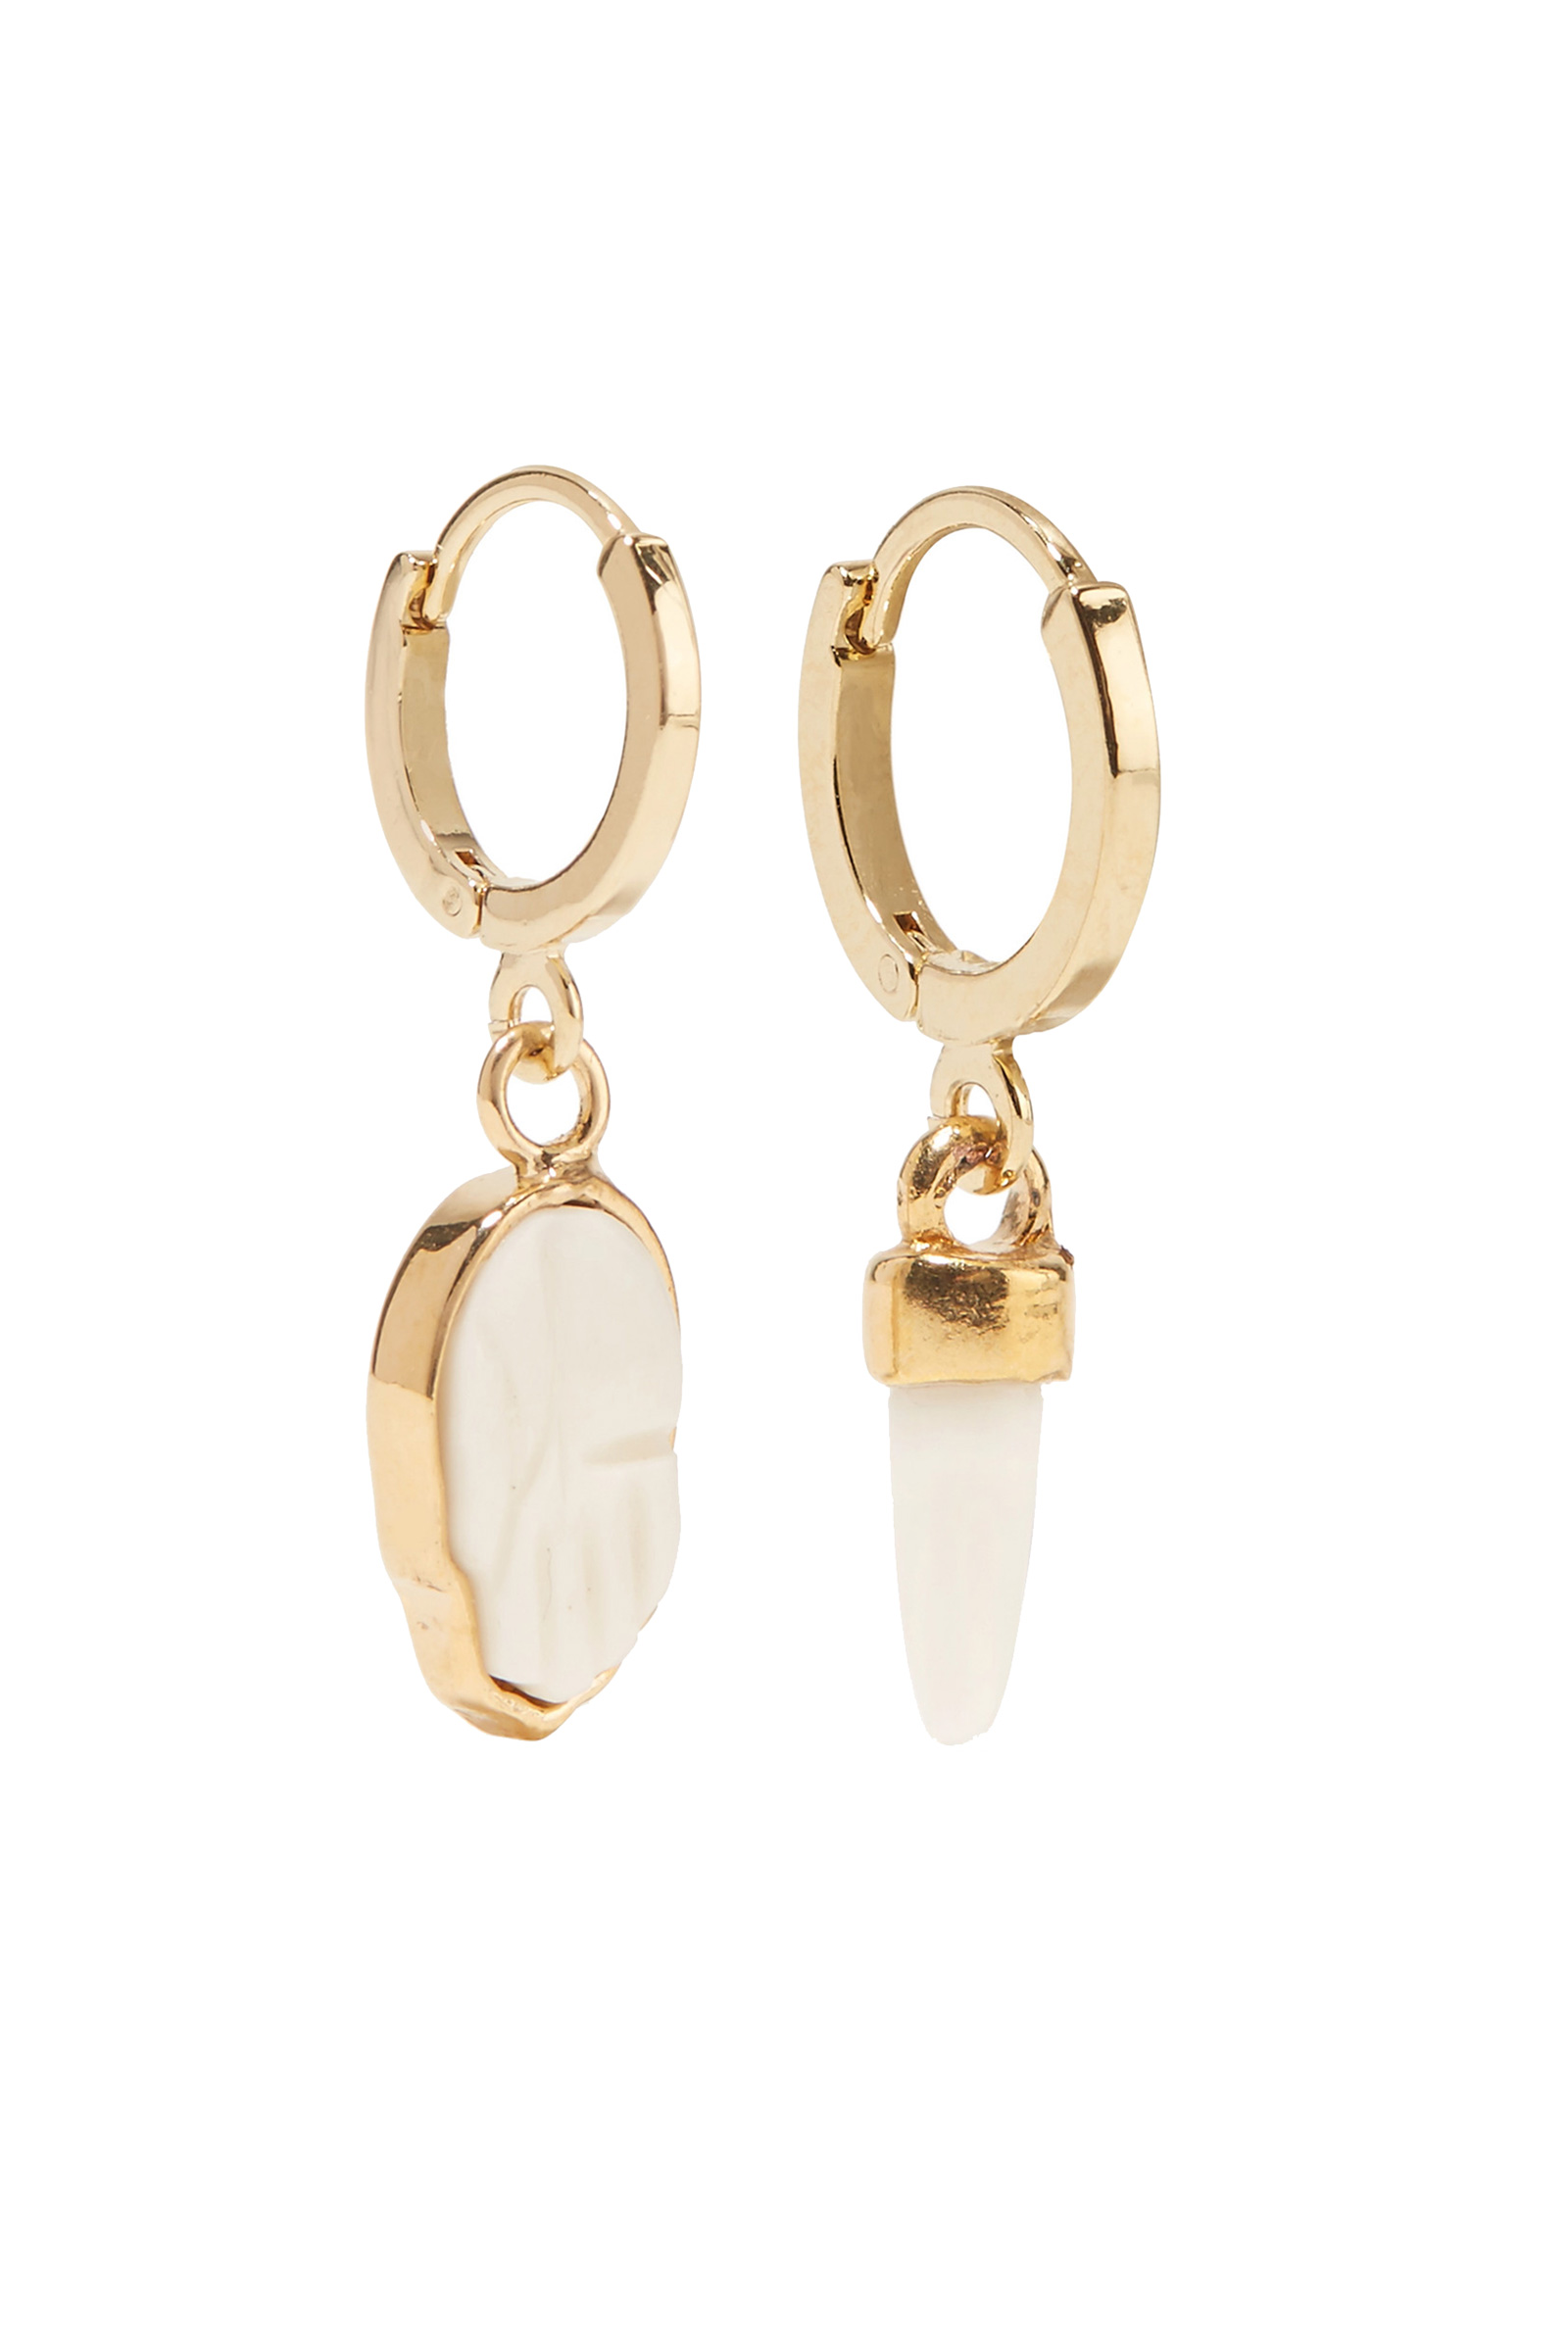 Click To Isabel Marant Earrings